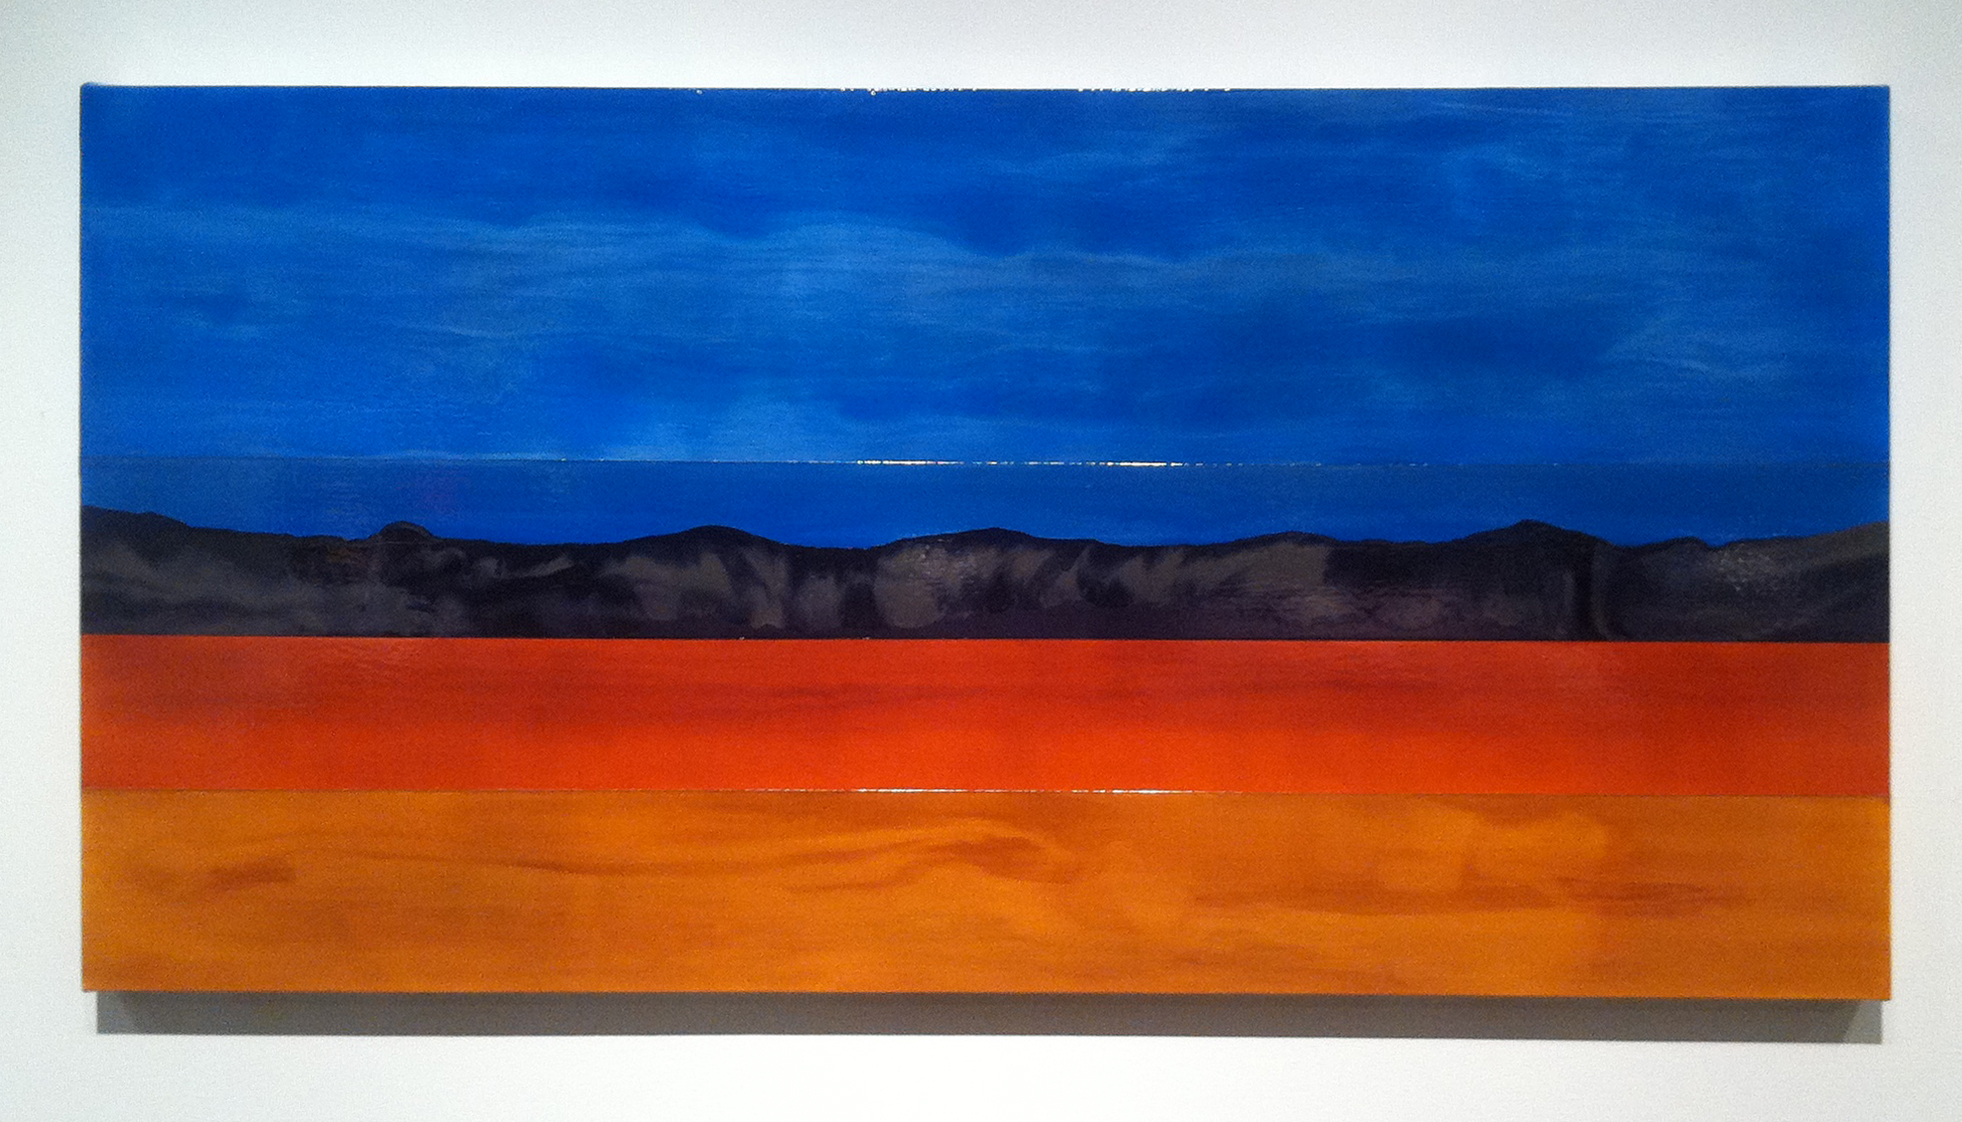 Kate MacKinnon, Eight Days in a Prius, 2013, oil on canvas over panel, 36 x 72 x 3 inches